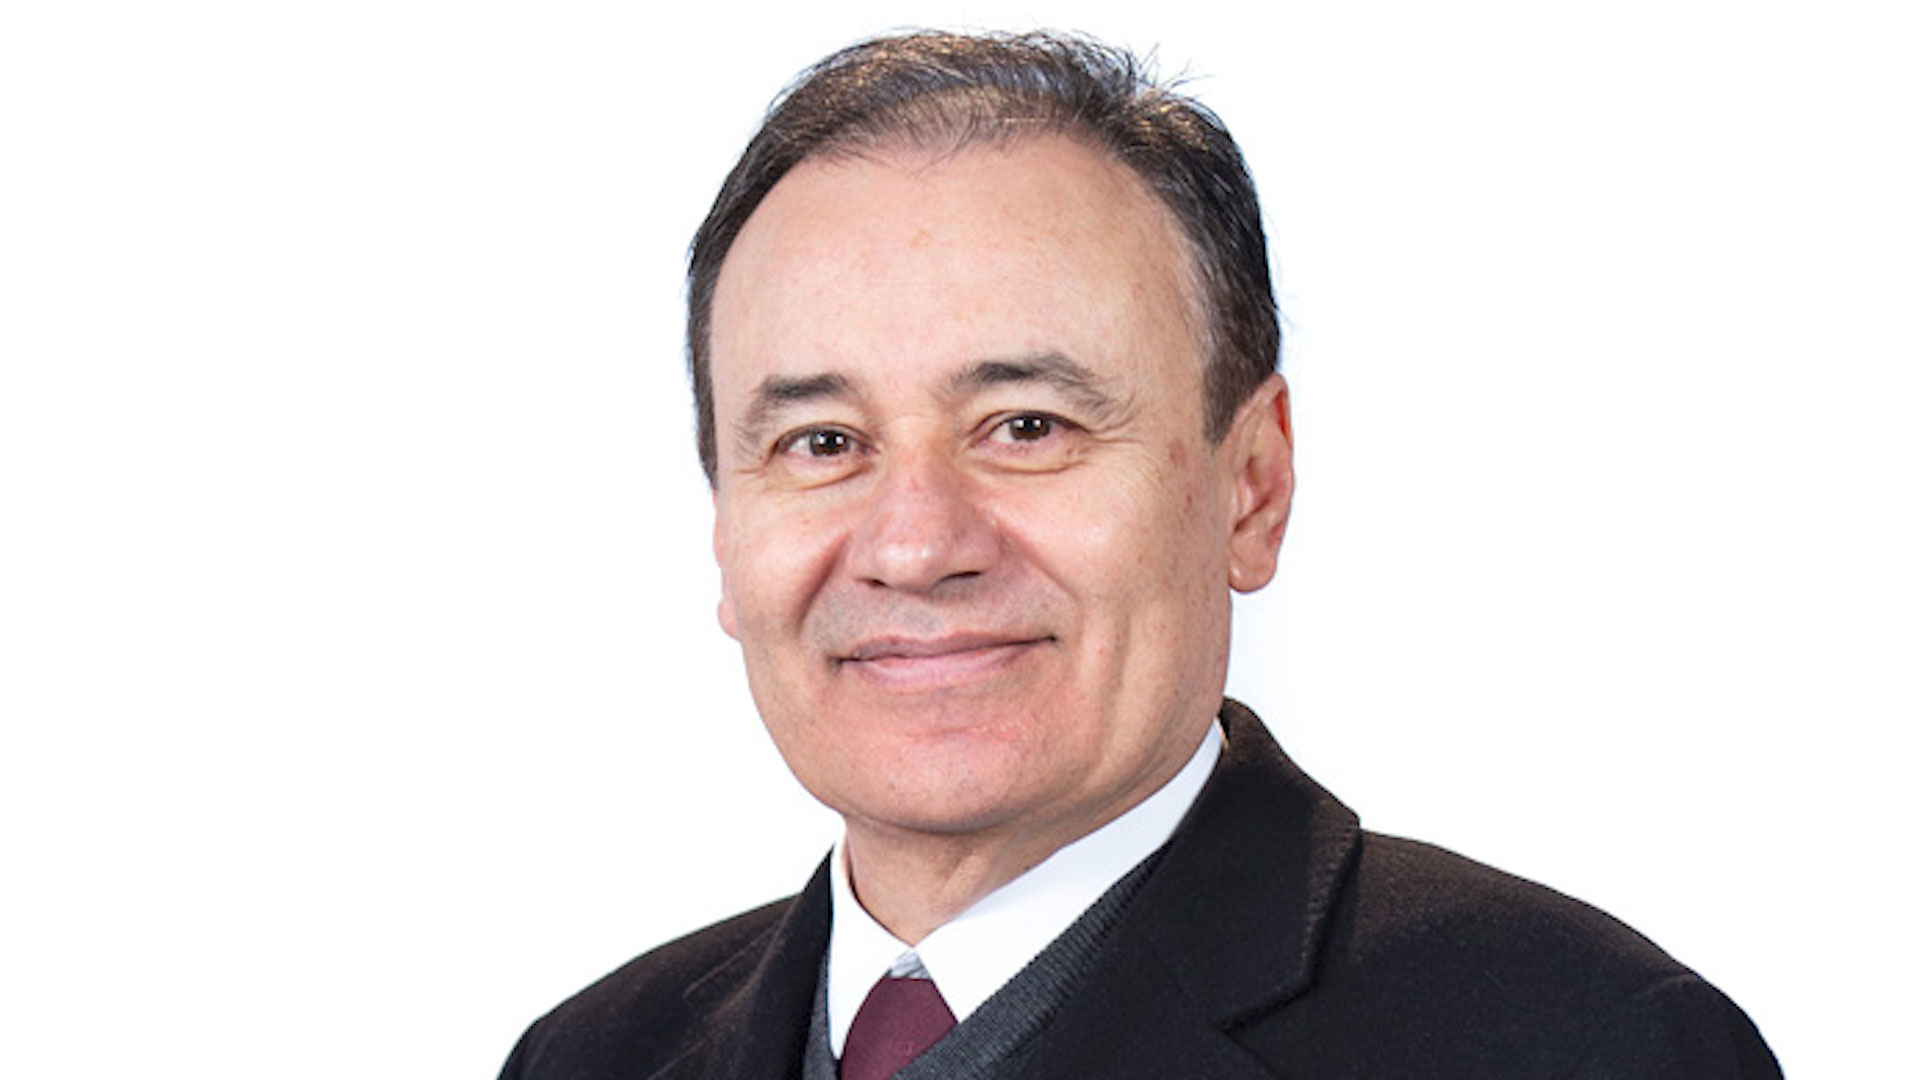 Former Mexican Security Secretary Alfonso Durazo was elected governor of the state of Sonora in June 2021.